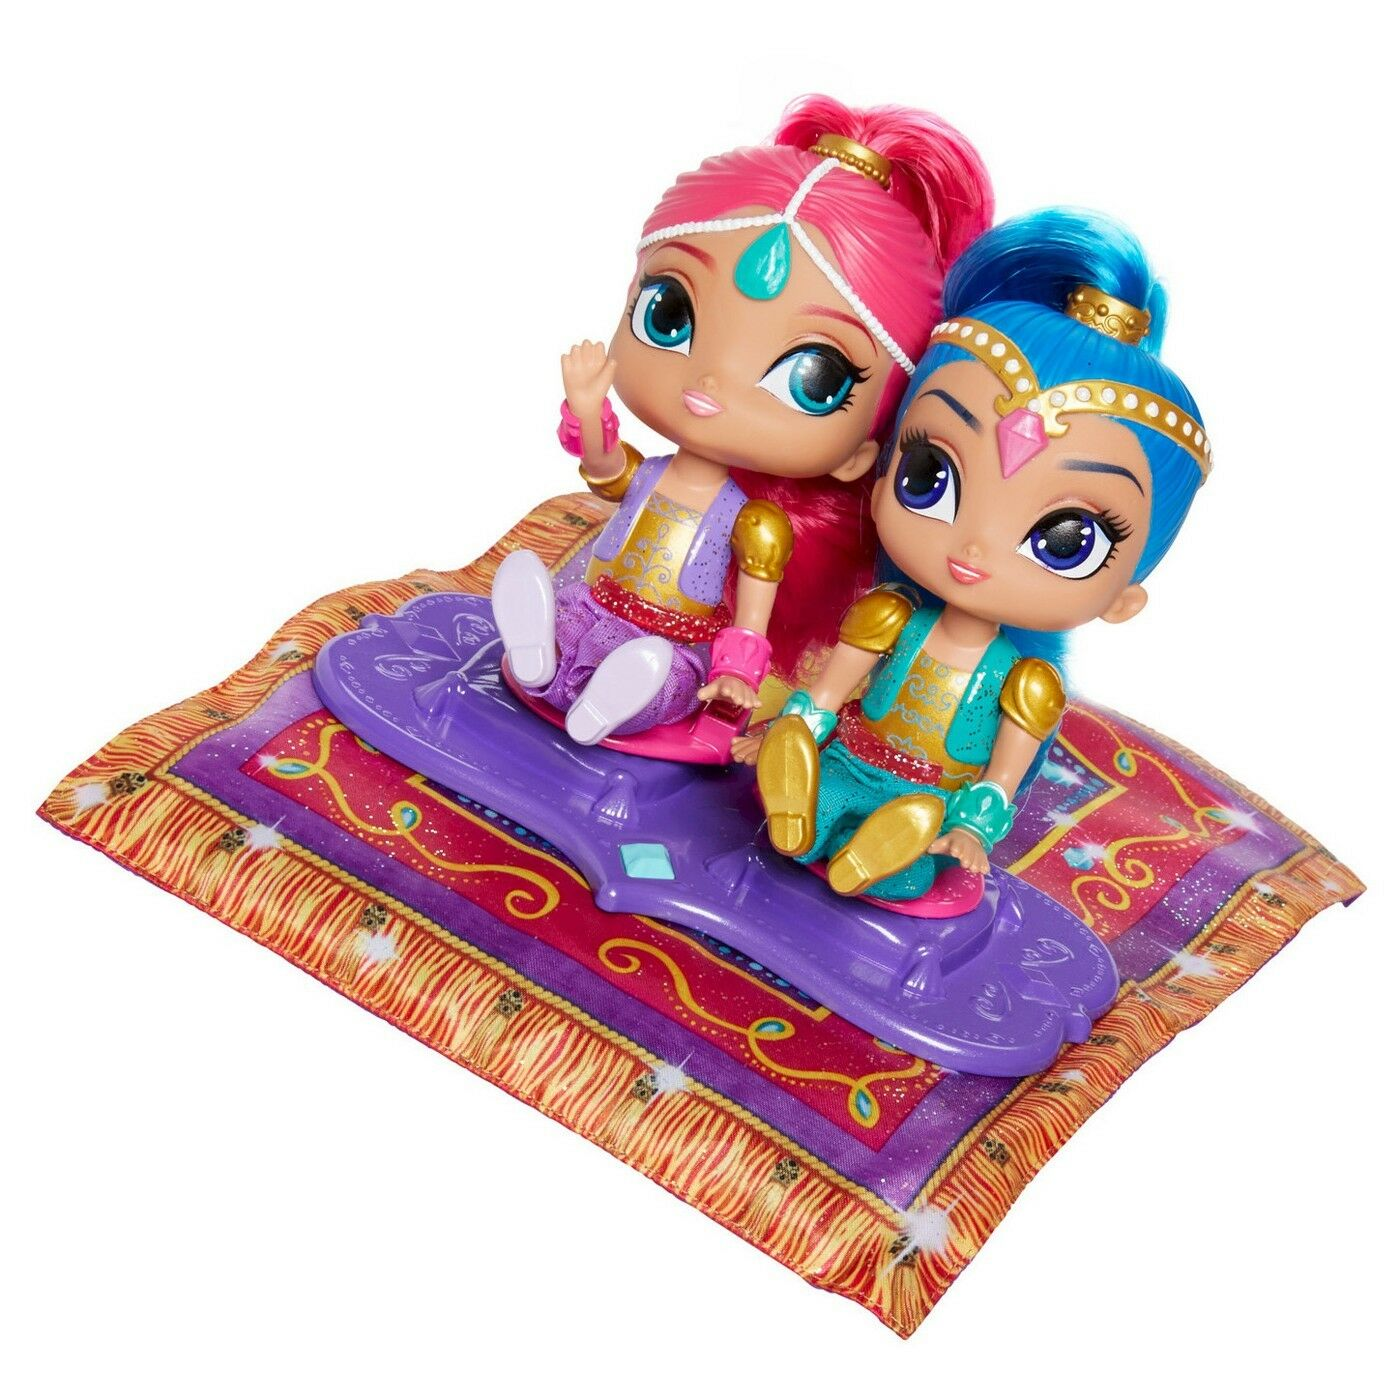 Fisher Price Shimmer and Shine Magic Flying Carpet Ages 3+ Toy Doll Play Girls